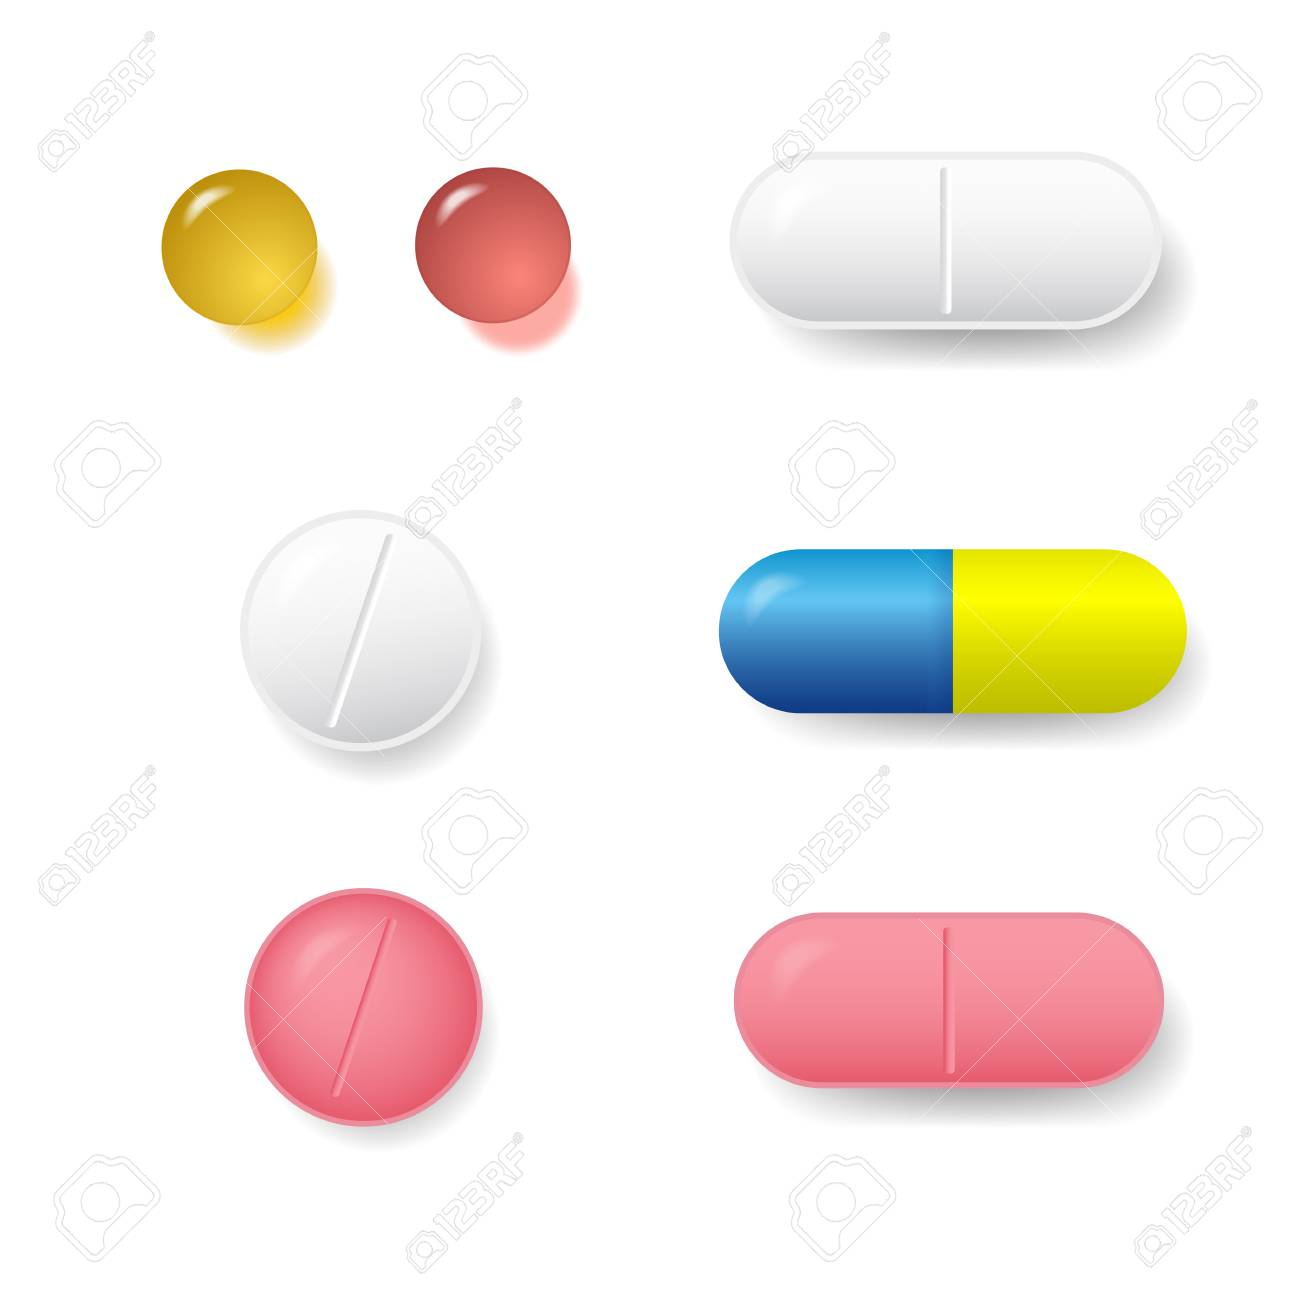 set of various vector pills and tablets isolated on white rh 123rf com vector pills ingredients vectra pills